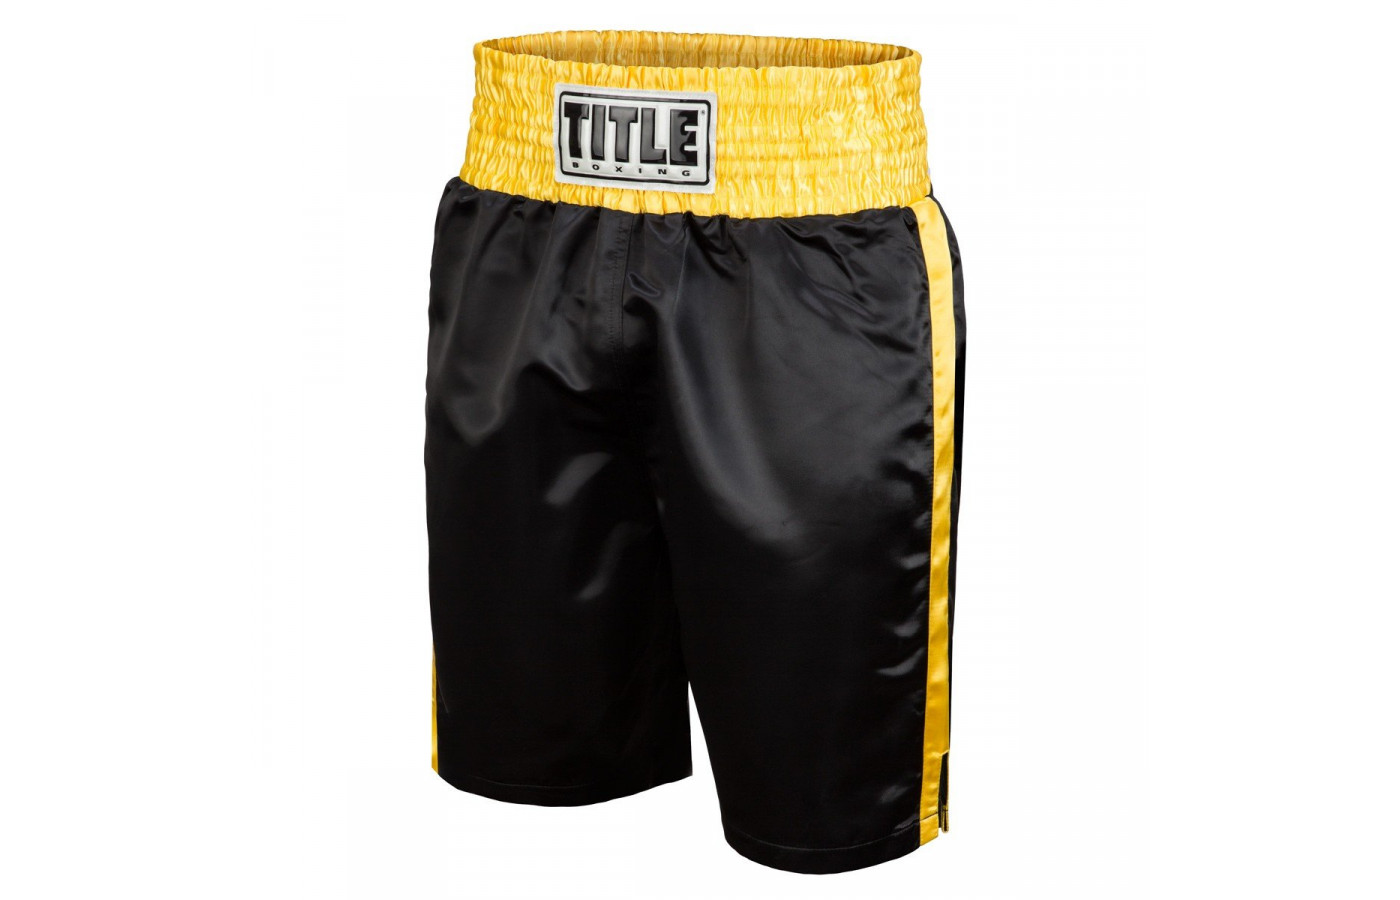 title trunks black and gold